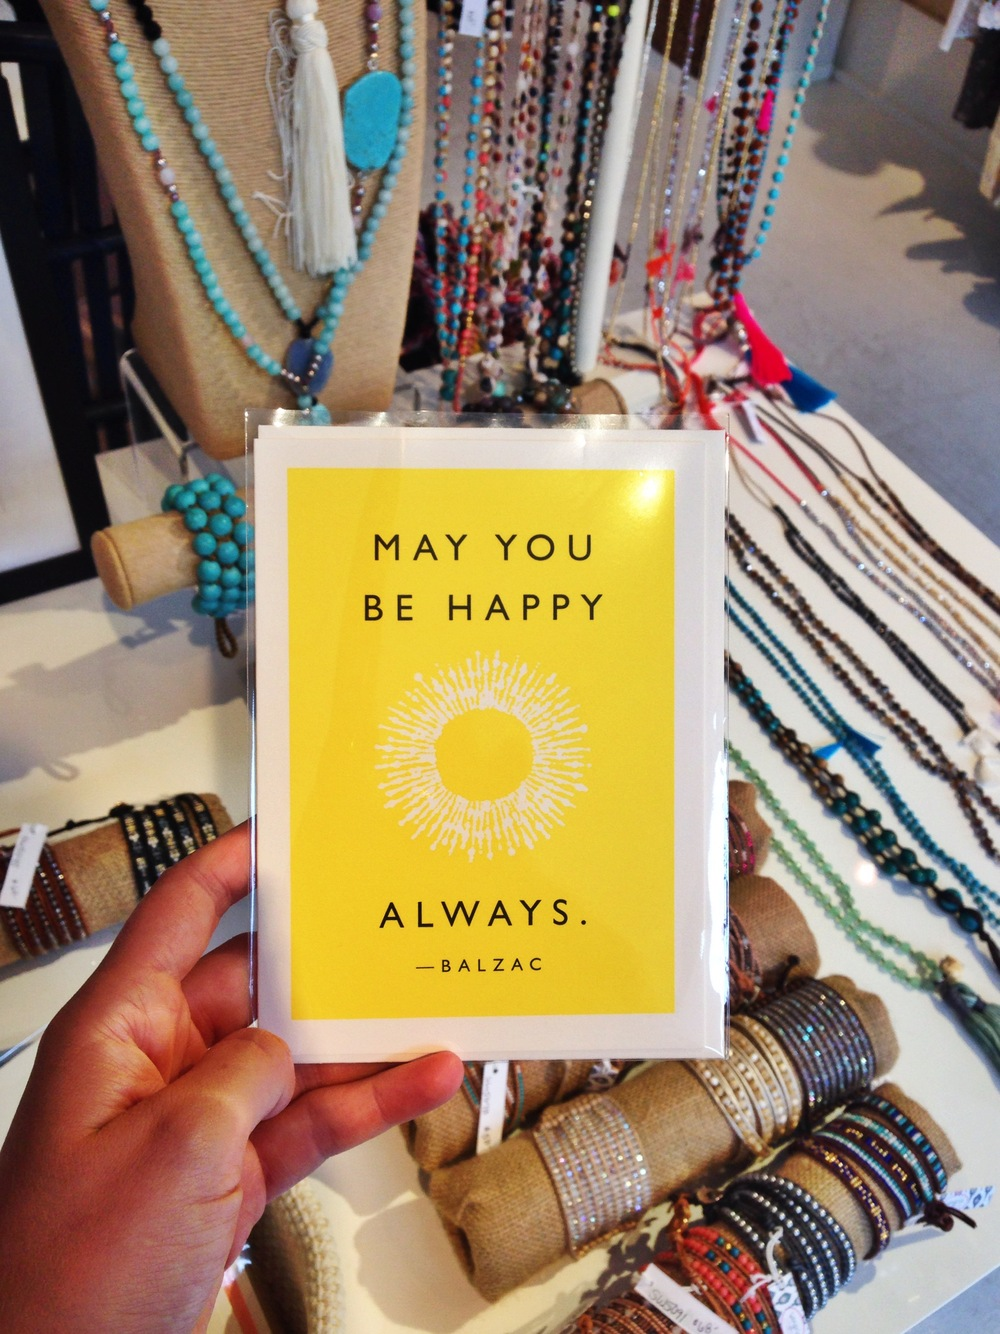 {More from the amazing CJ Laing shop: cards by J. Falkner}